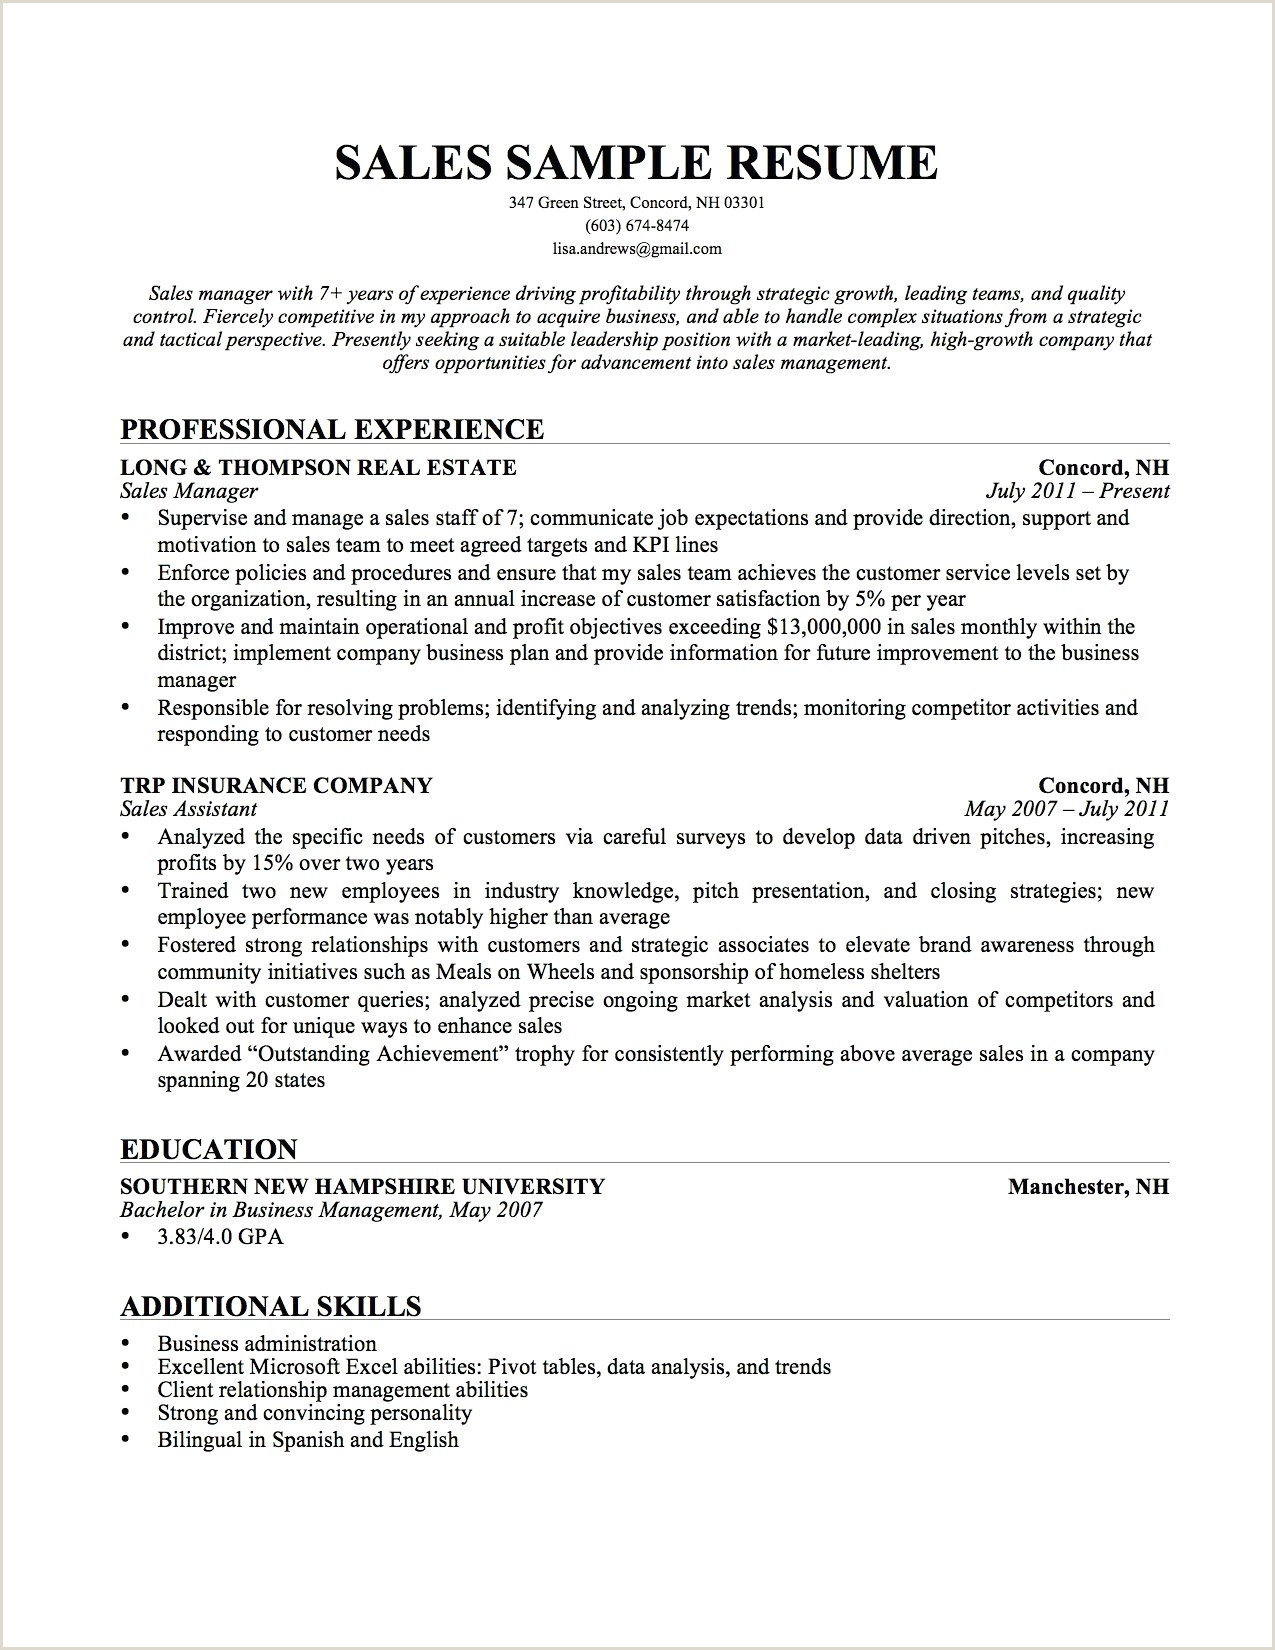 Nursing Externship Cover Letter 25 New Cover Letter for Cna